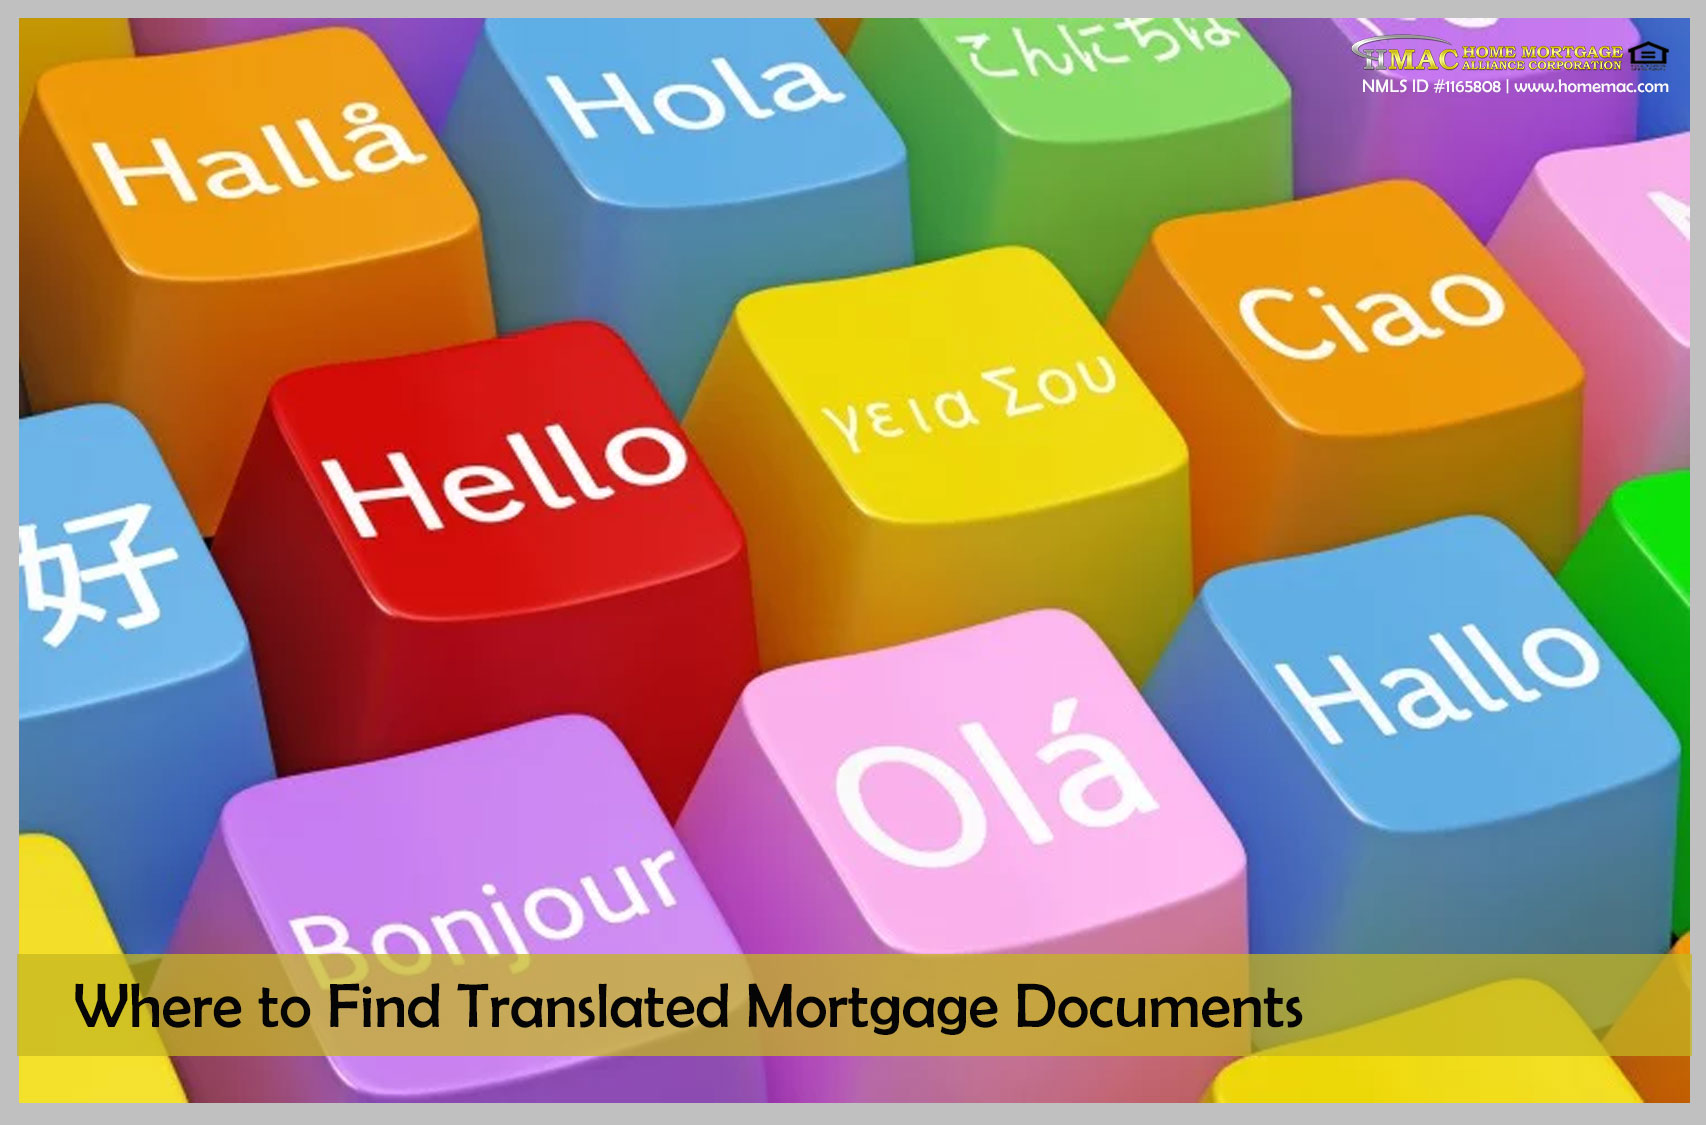 Where to find translated mortgage documents